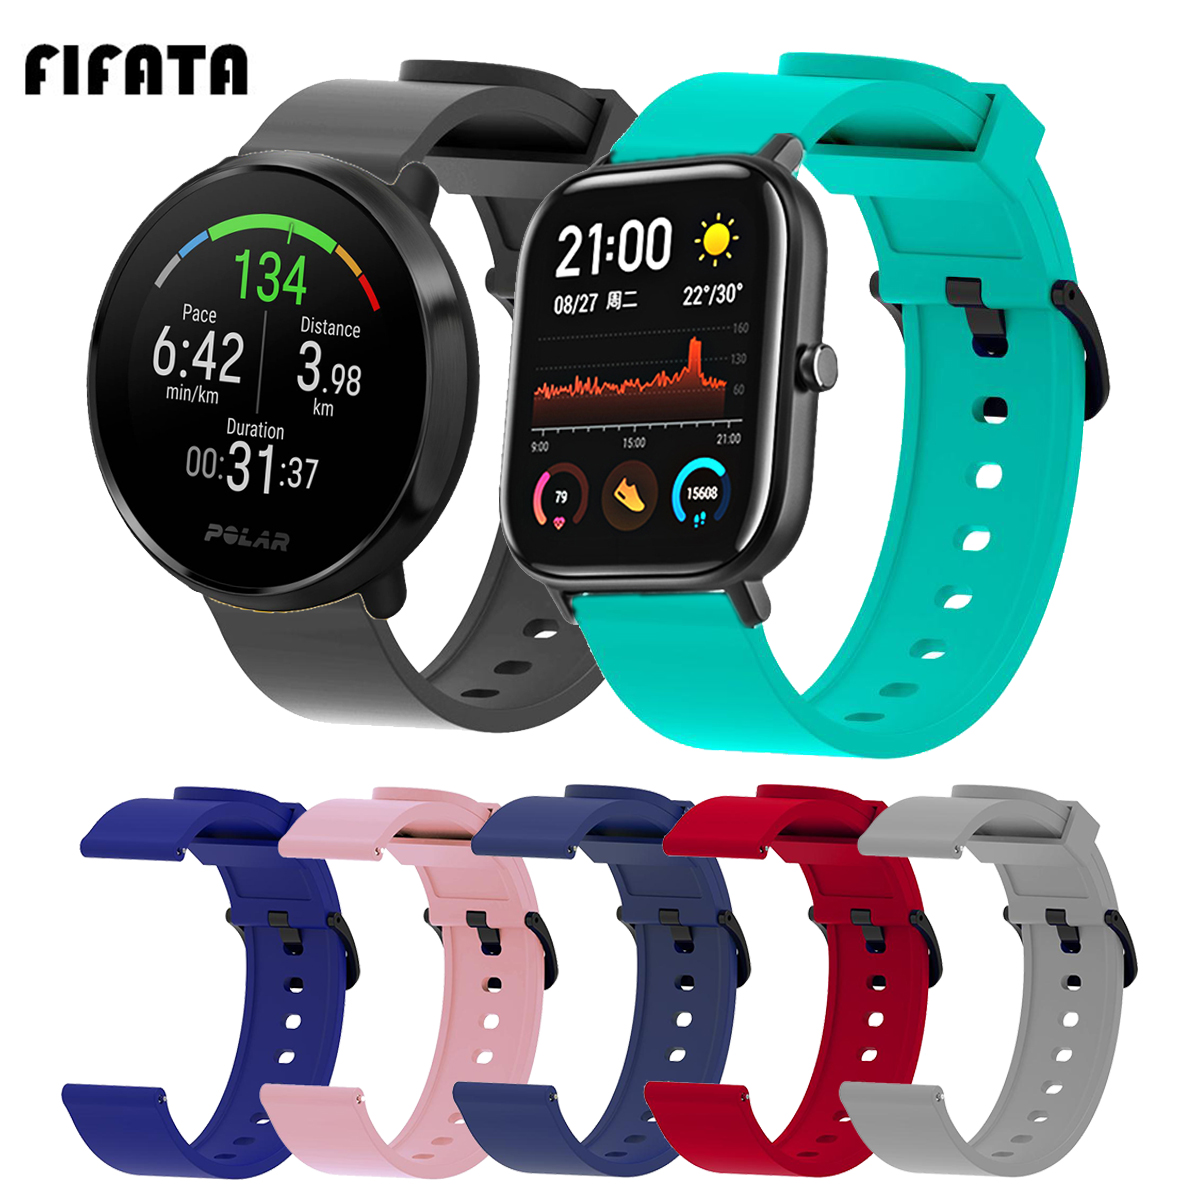 FIFATA 20MM Soft Silicone Colorful Watch Strap For Polar Ignite Smart Watch Wristband For Xiaomi Huami Amazfit GTS/Bip/GTR 42MM